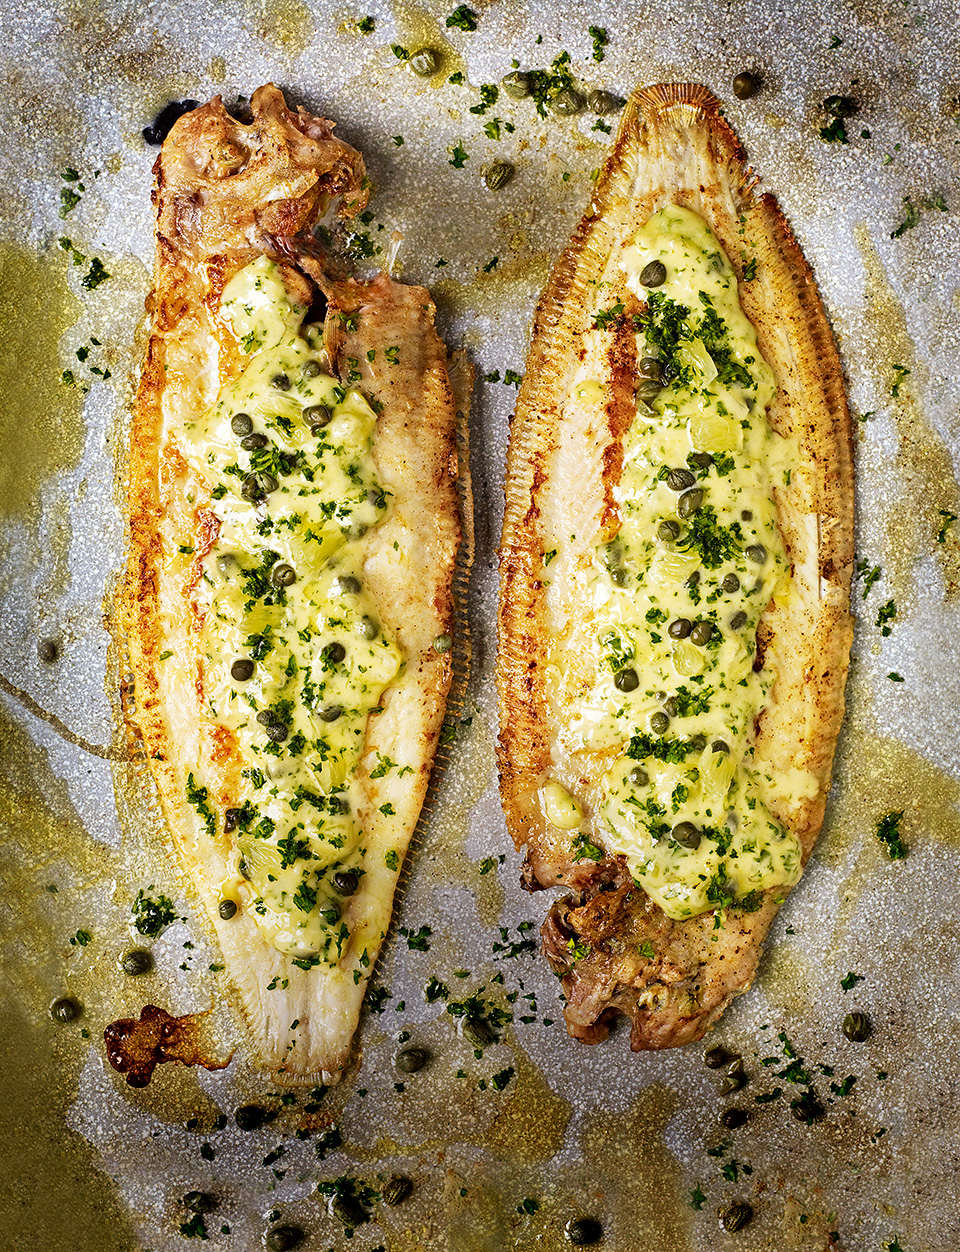 Pan fried dover sole with caper lemon and parsley butter sauce pan fried dover sole with caper lemon and parsley butter sauce delicious magazine forumfinder Gallery